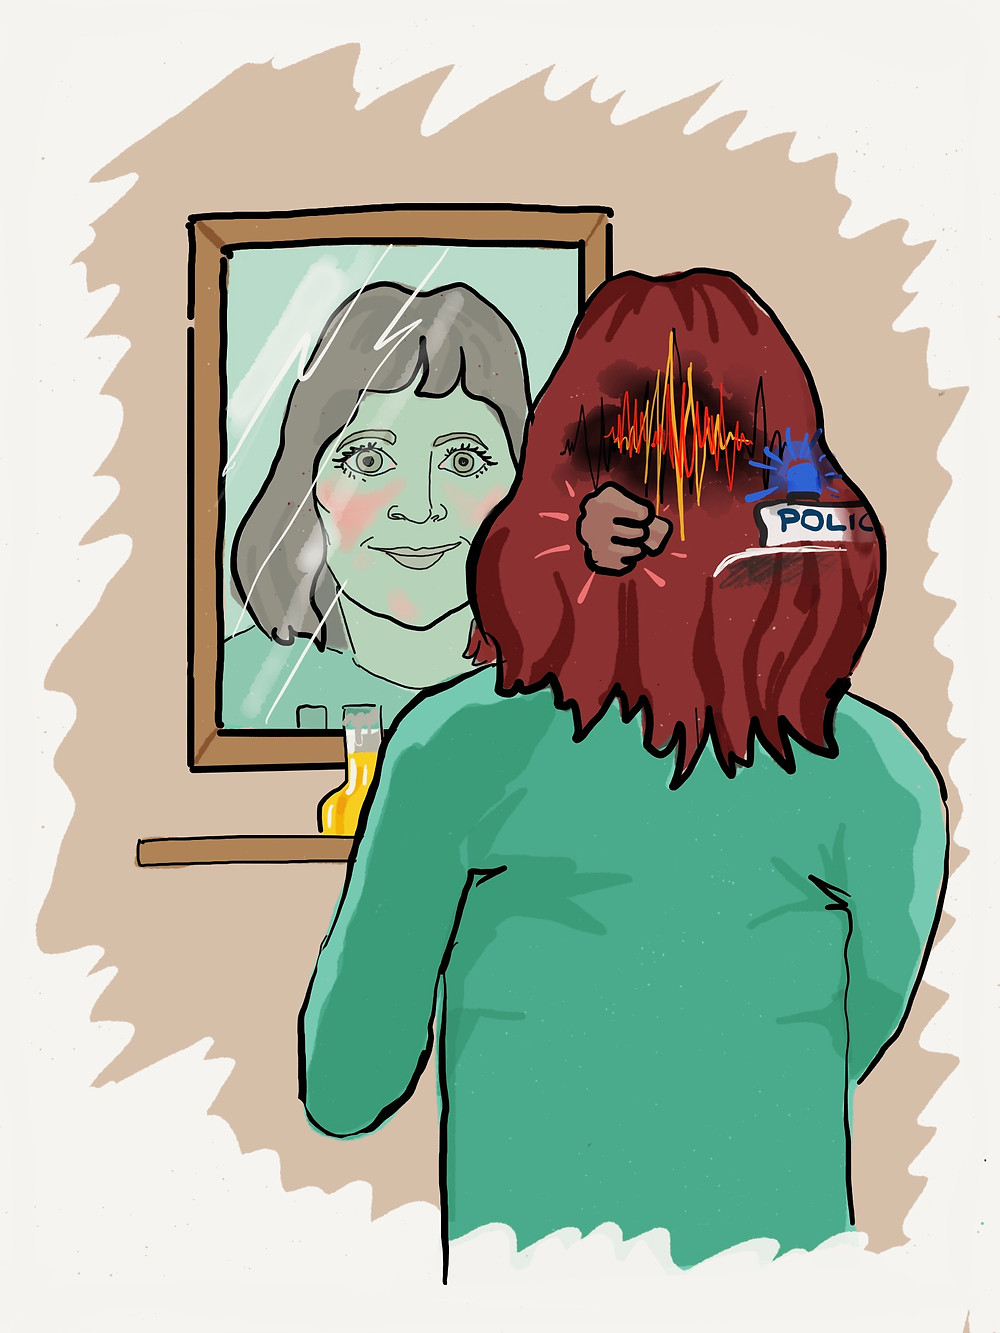 Woman smiling in the mirror re-living negative memories illustrated on the back of her head